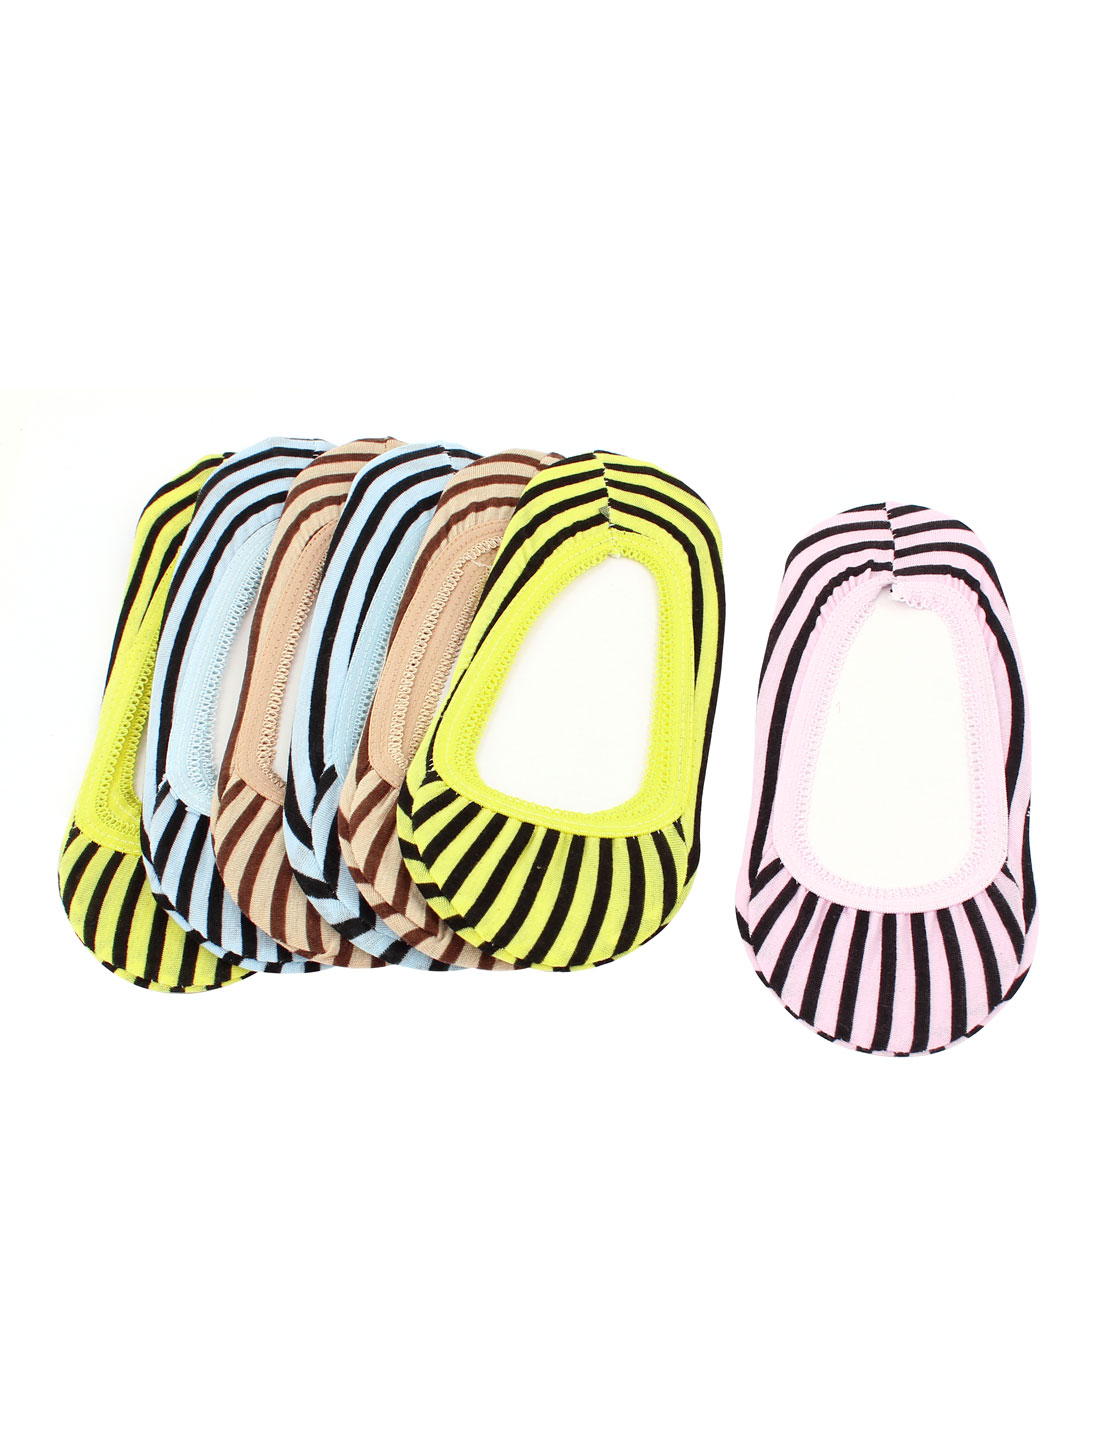 7 Pairs Summer Multicolor Stripes Print Cotton Blends Elastic Cuff Short Low Cut Slipper Heels Footsie Invisible Boat Socks for Lady